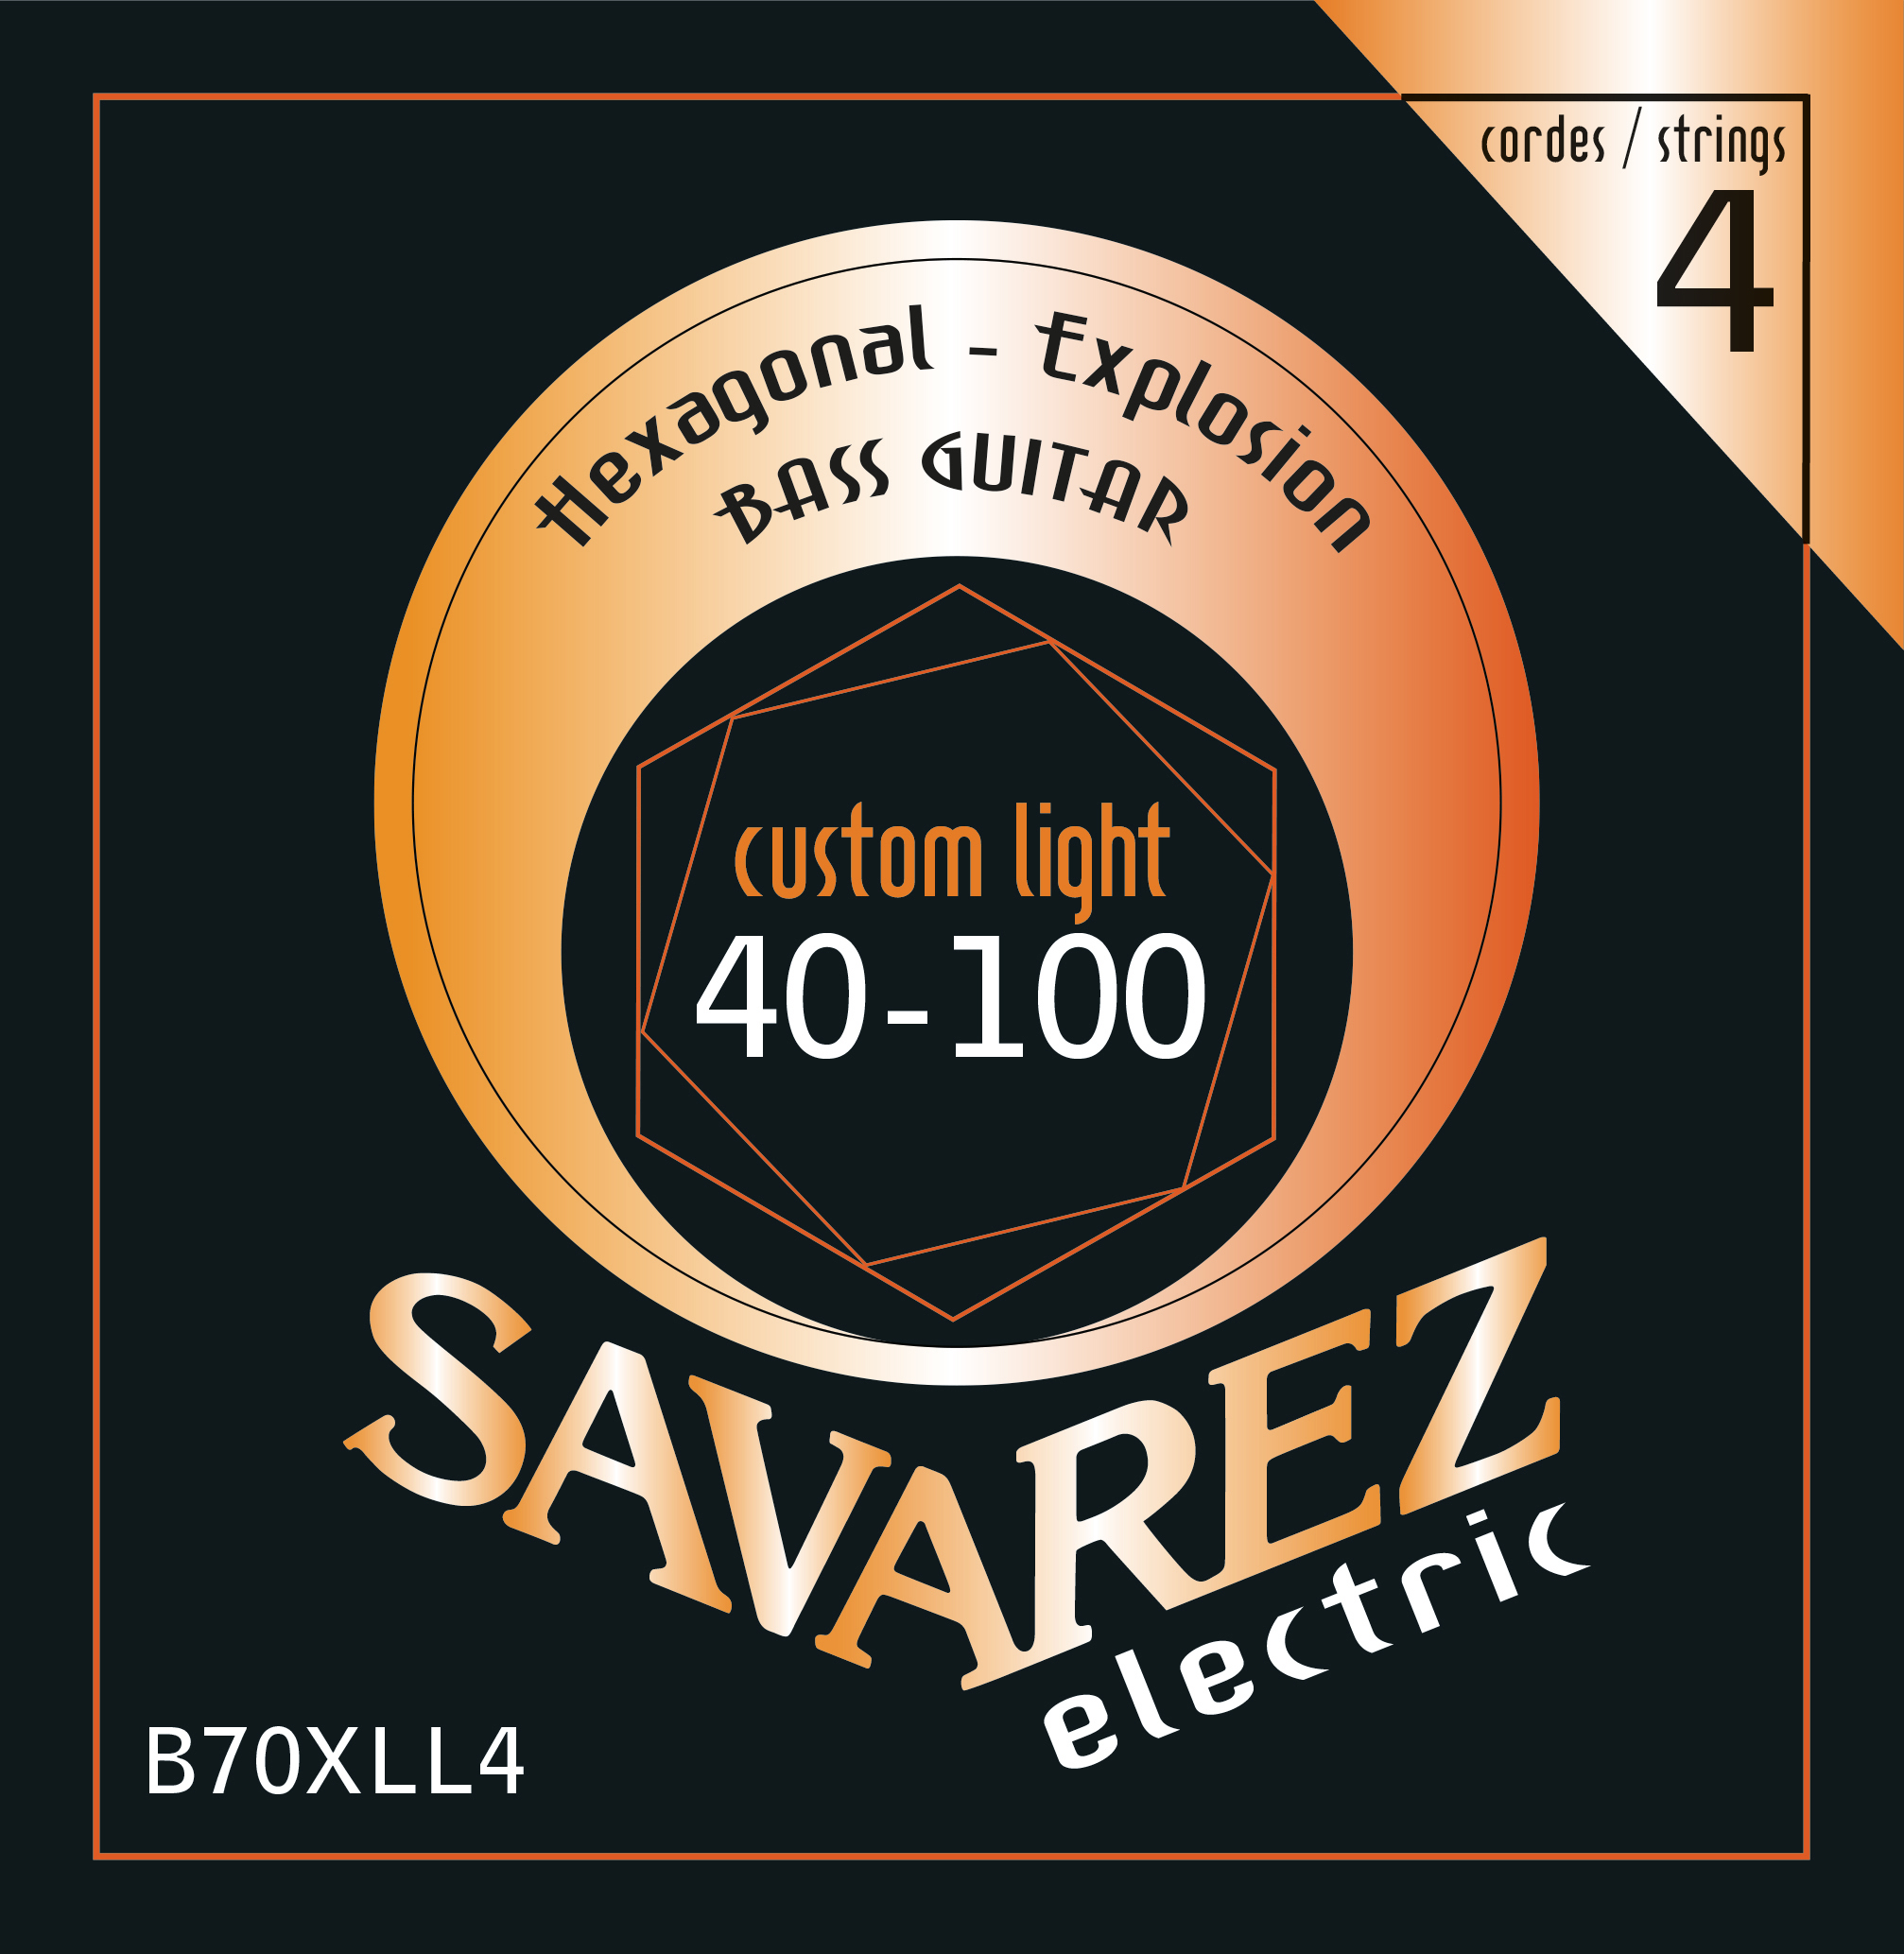 SAVAREZ ELECTRIC HEXAGONAL EXPLOSION BASSE B70XLL4